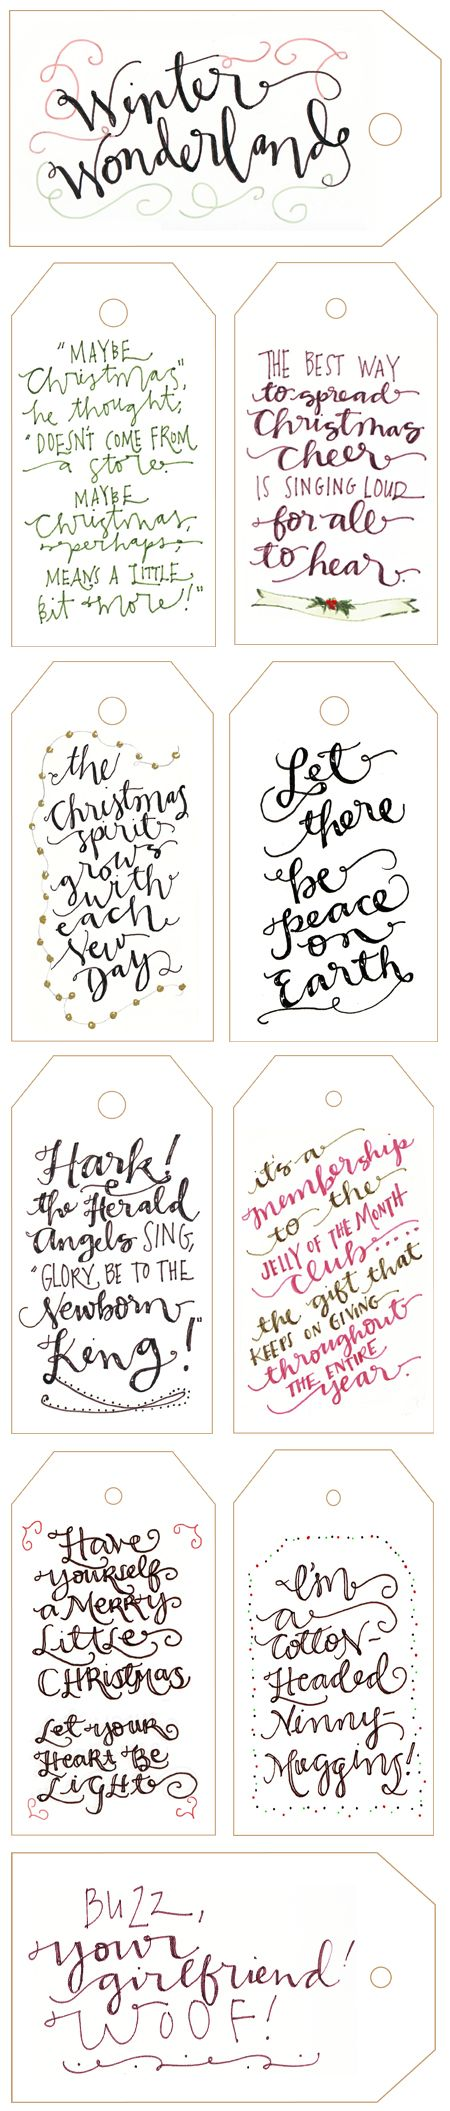 Calligraphy Gift Tags for Winter holidays and Christmas. Inspired me to look for my ancient calligraphy pens.     I could hide private messages in the flourishes (steganography in a new way)